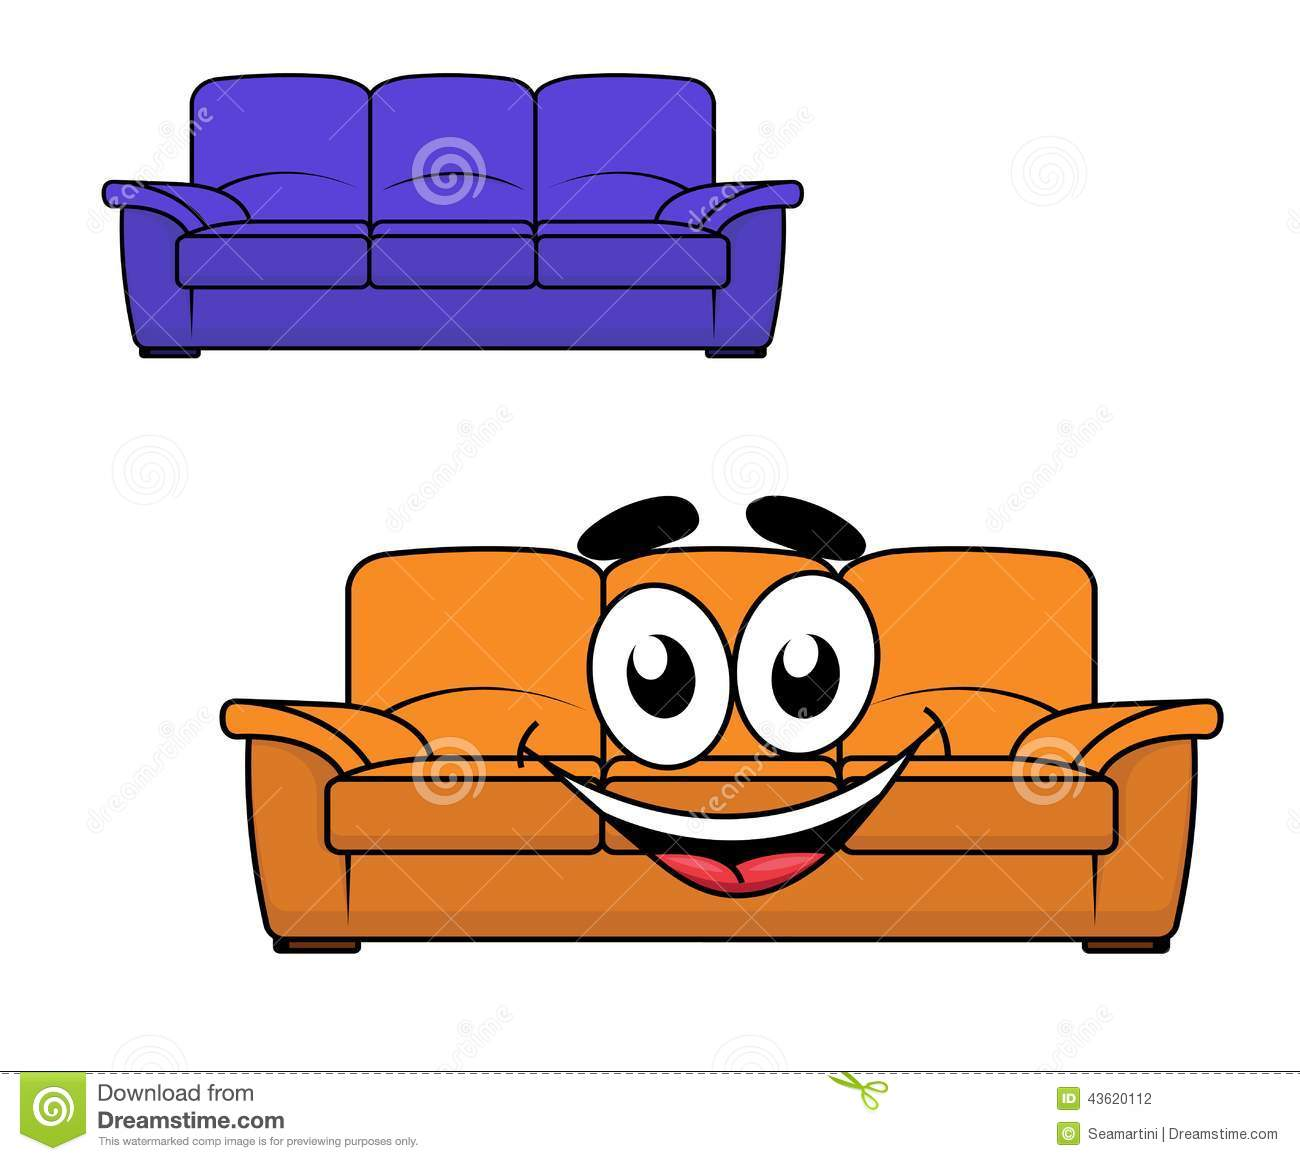 Cartoon Couch Furniture Stock Vector. Illustration Of